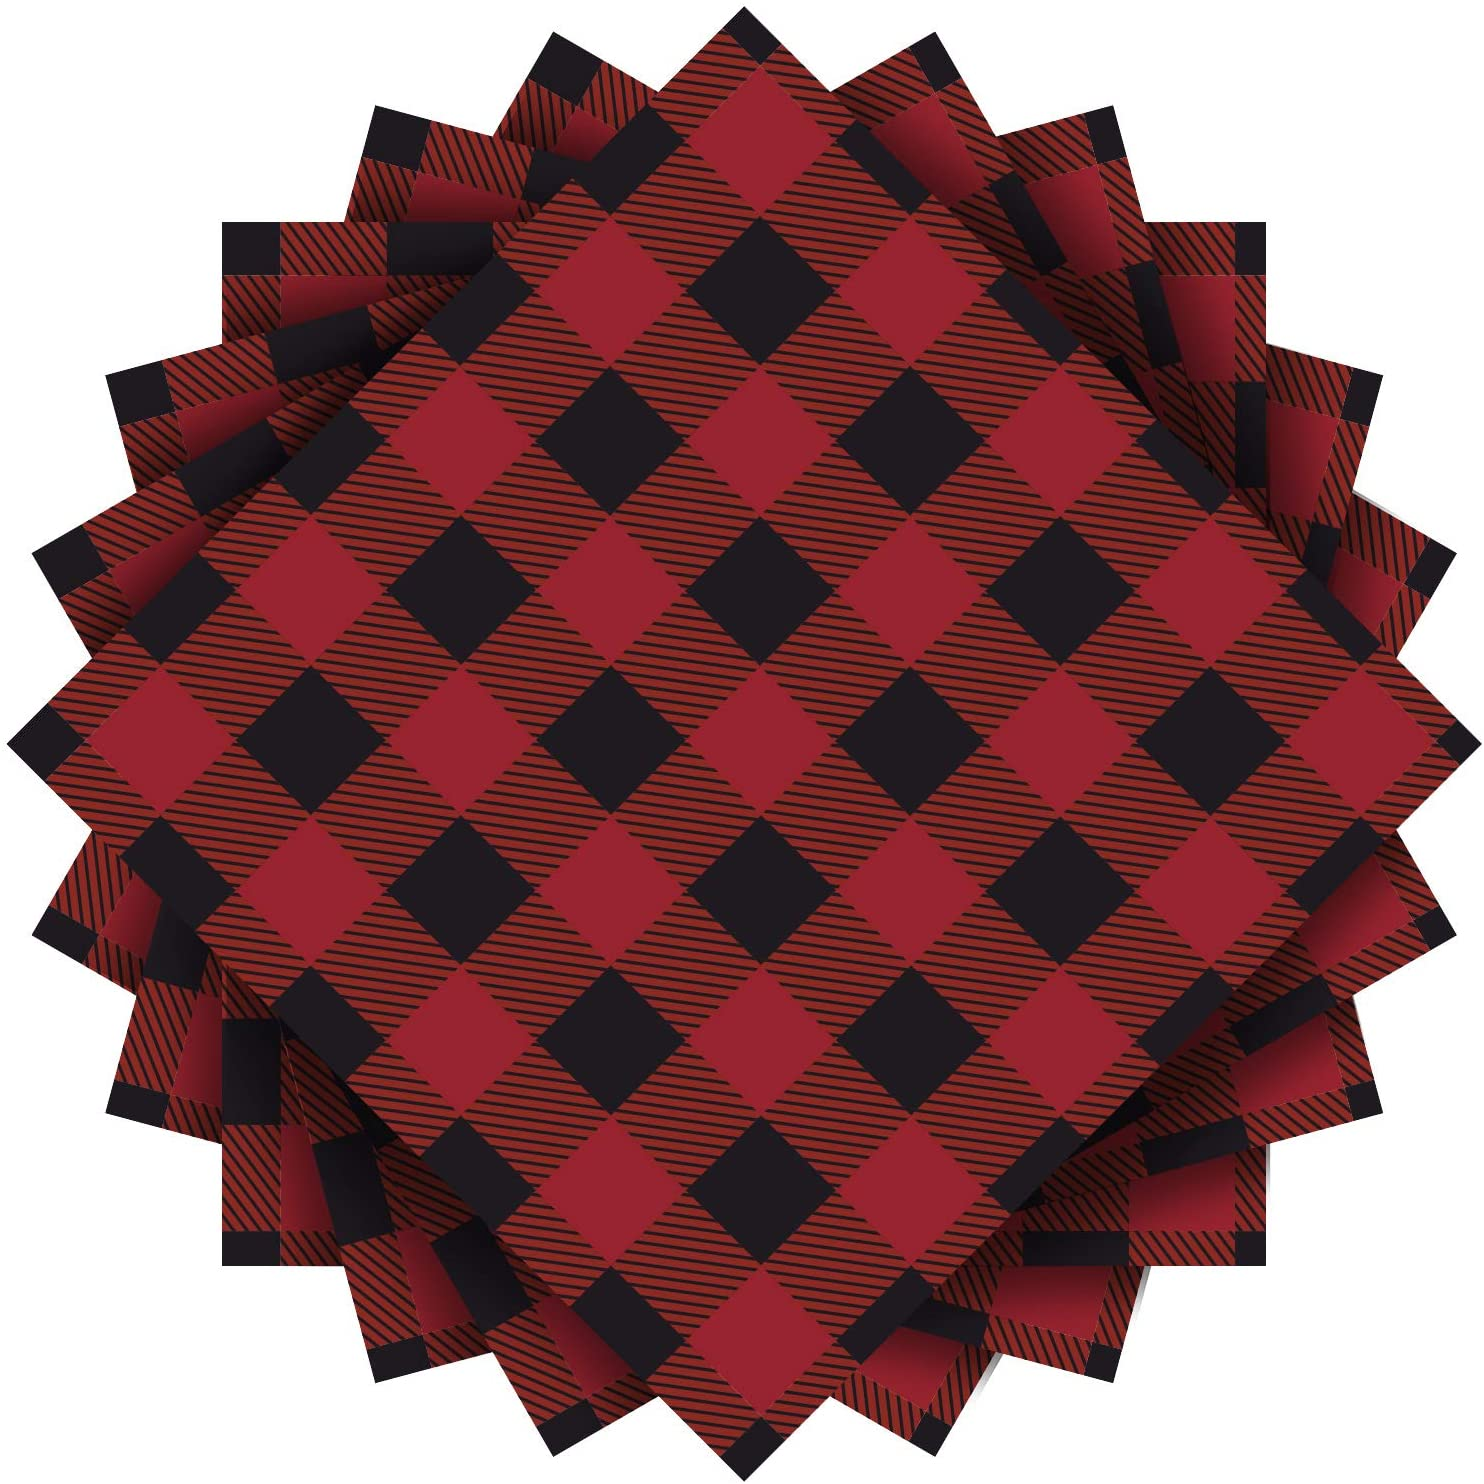 Aneco 80 Pack Red and Black Plaid Papers Napkins Luncheon Napkins for Wedding, Party, Birthday, Dinner, Lunch with 3 Layers, 6.5 by 6.5 Inches